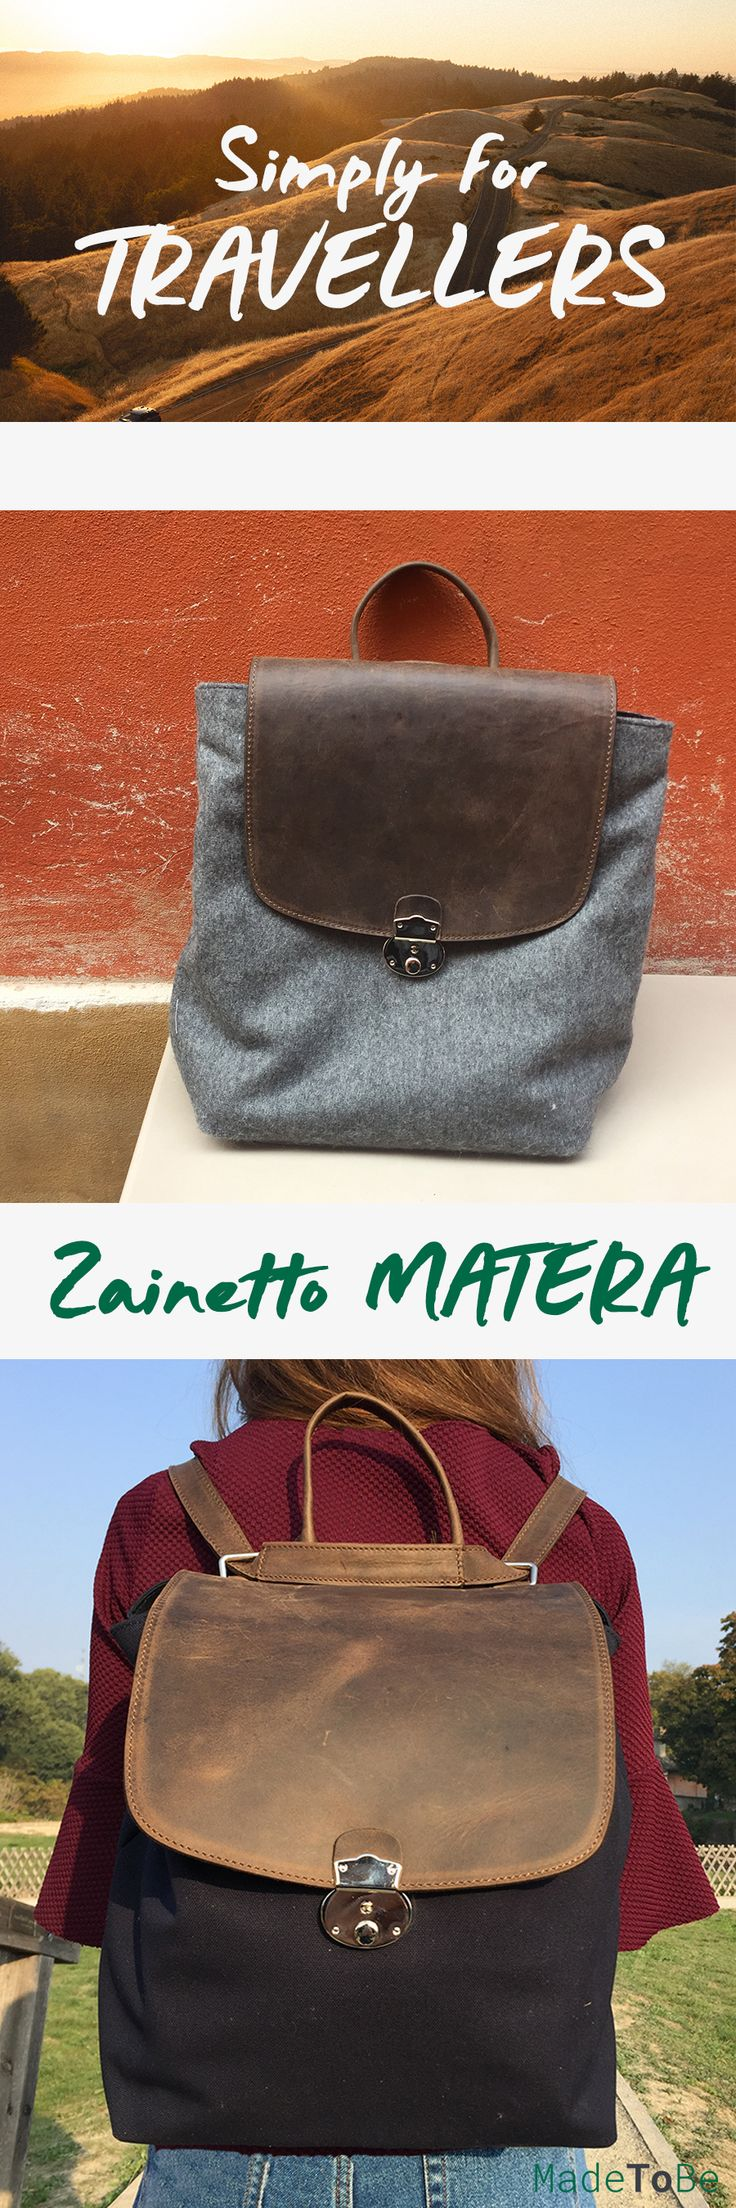 Matera Backpack....Simply for Travellers - handmade by MadeToBe